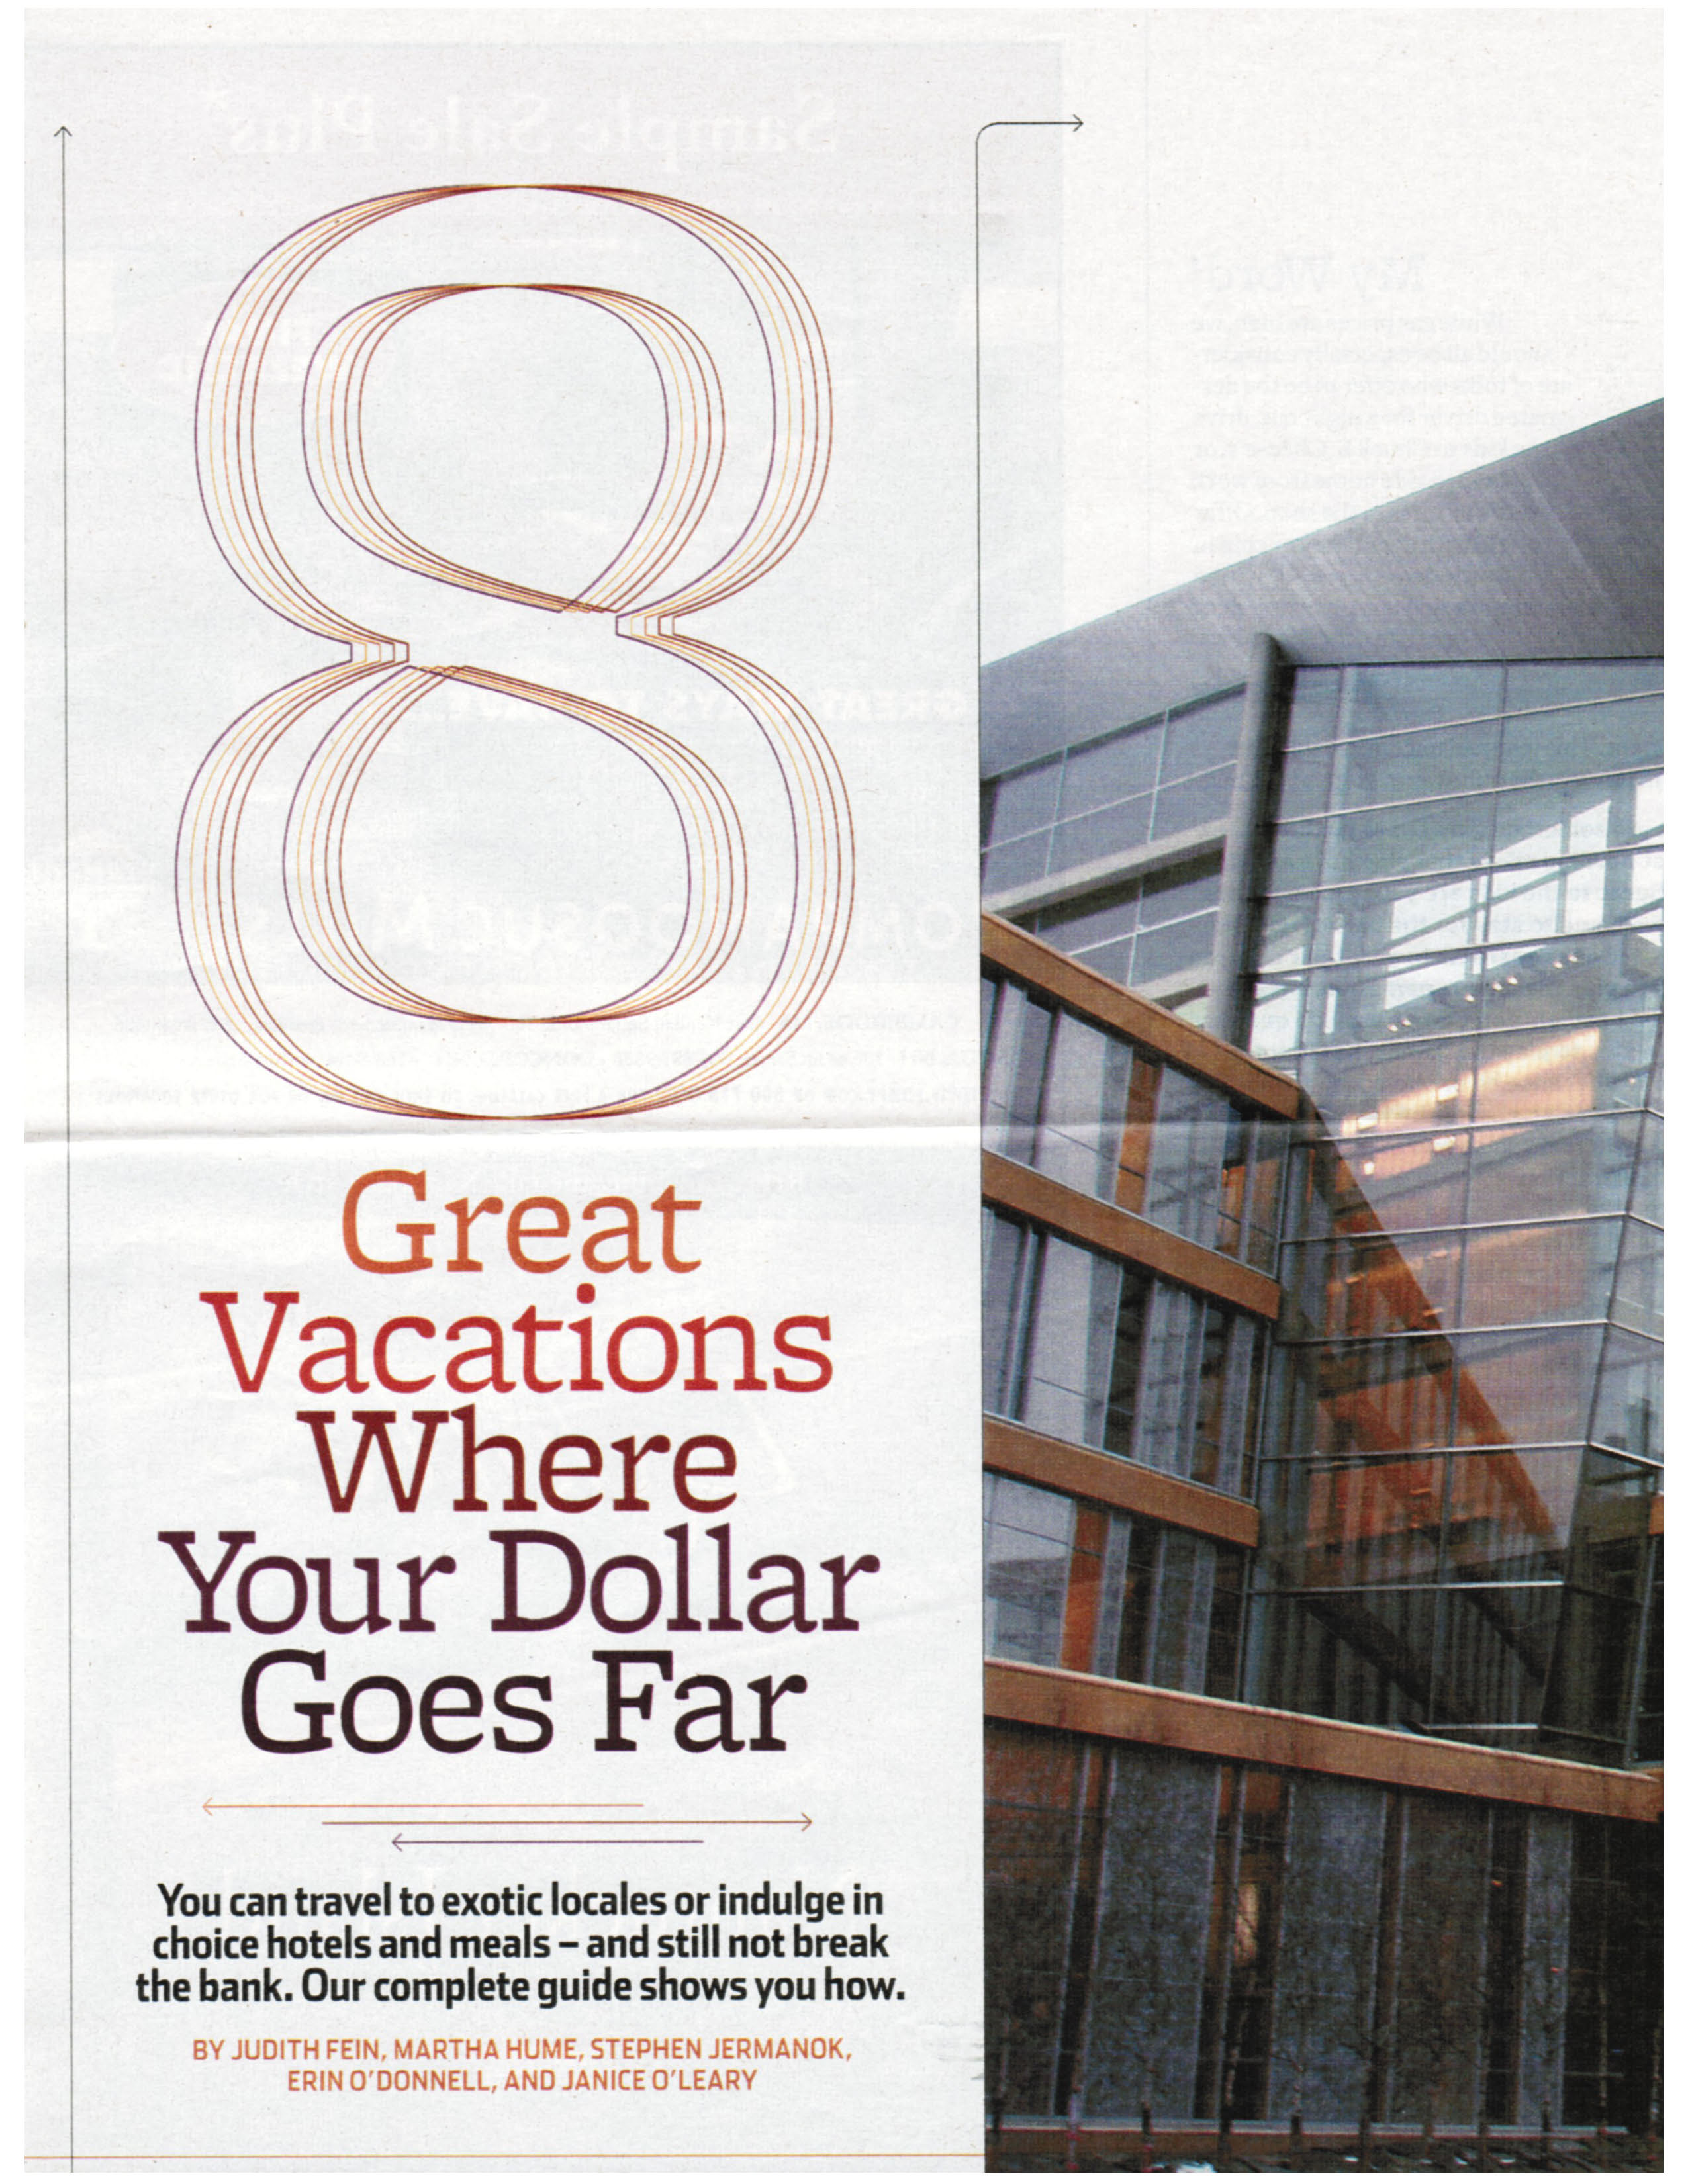 Eight Great Vacations